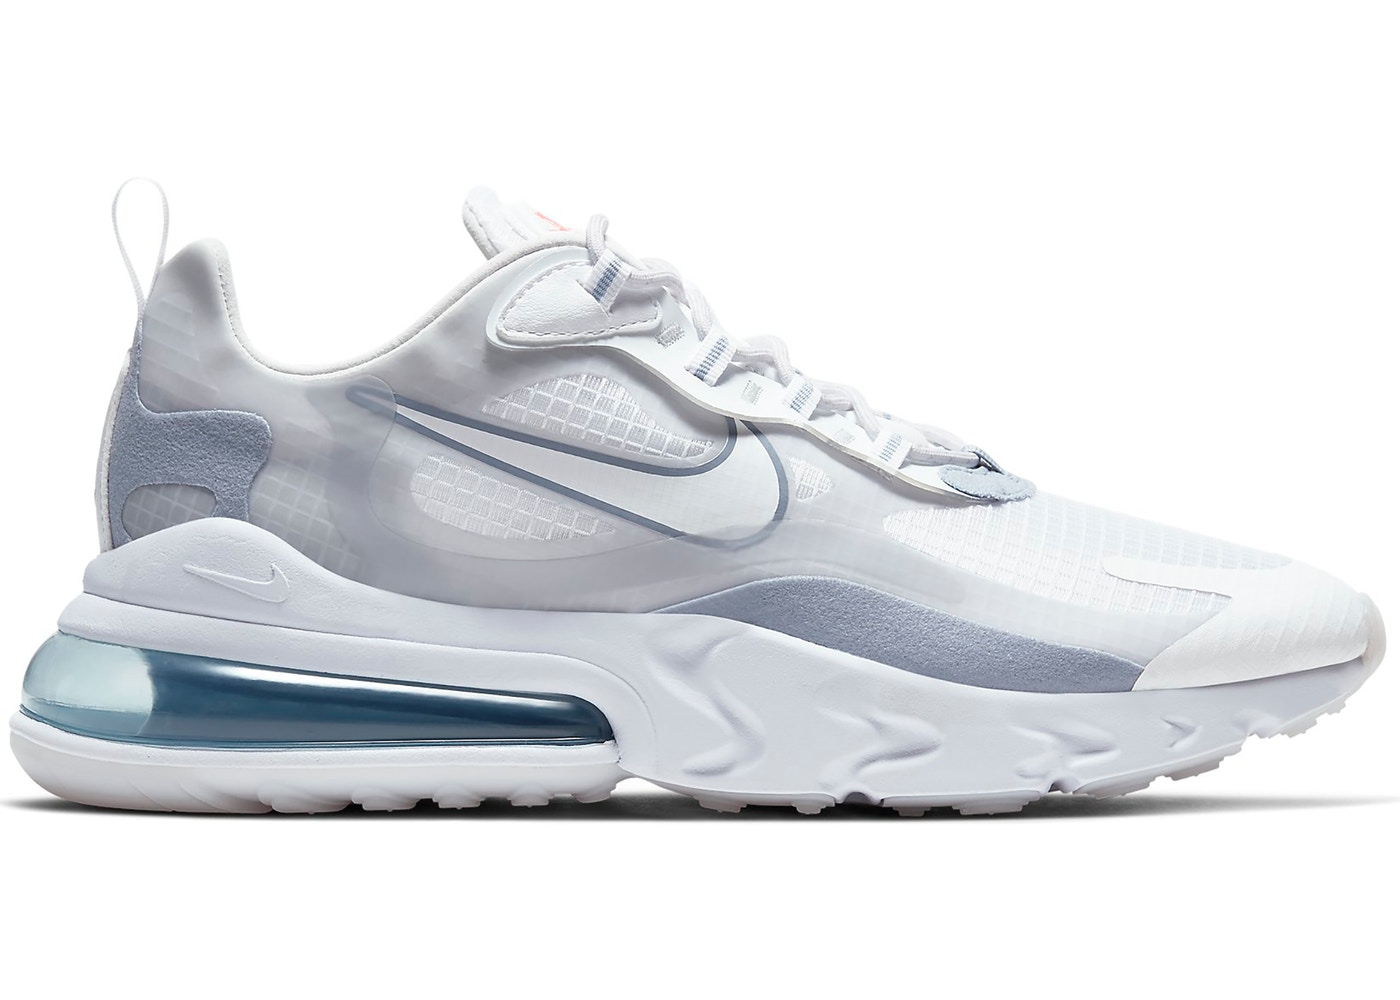 desmayarse Distante hacer clic  Nike Air Max 270 React White Pure Platinum - CT1265-100